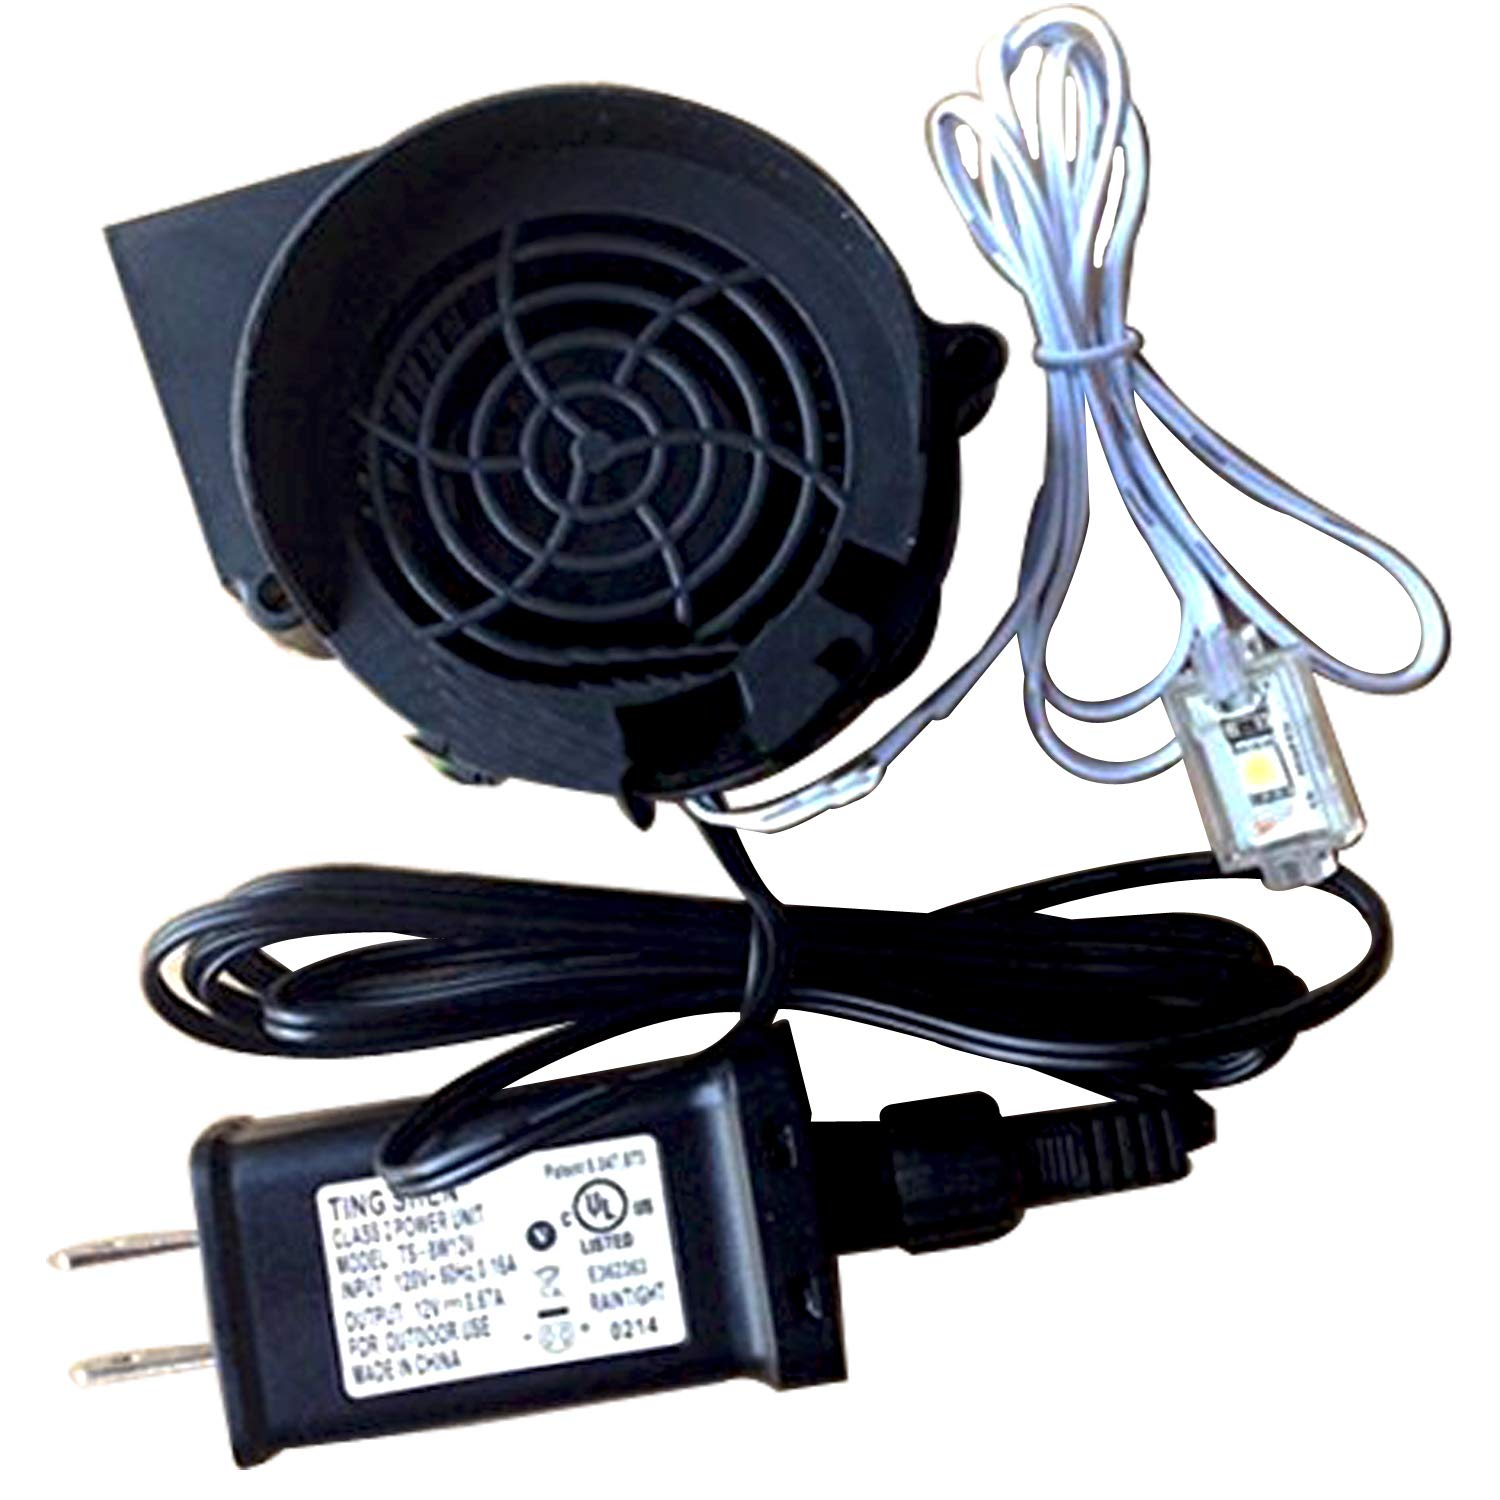 Gemmy Inflatable Replacement 15 A Fan Blower With 12v 15a Adapter Five Wire Diagram Harbor Breeze Remote And 6 Long Light String 3 Very Bright Led Lights Model Jdh1232s By Yfan